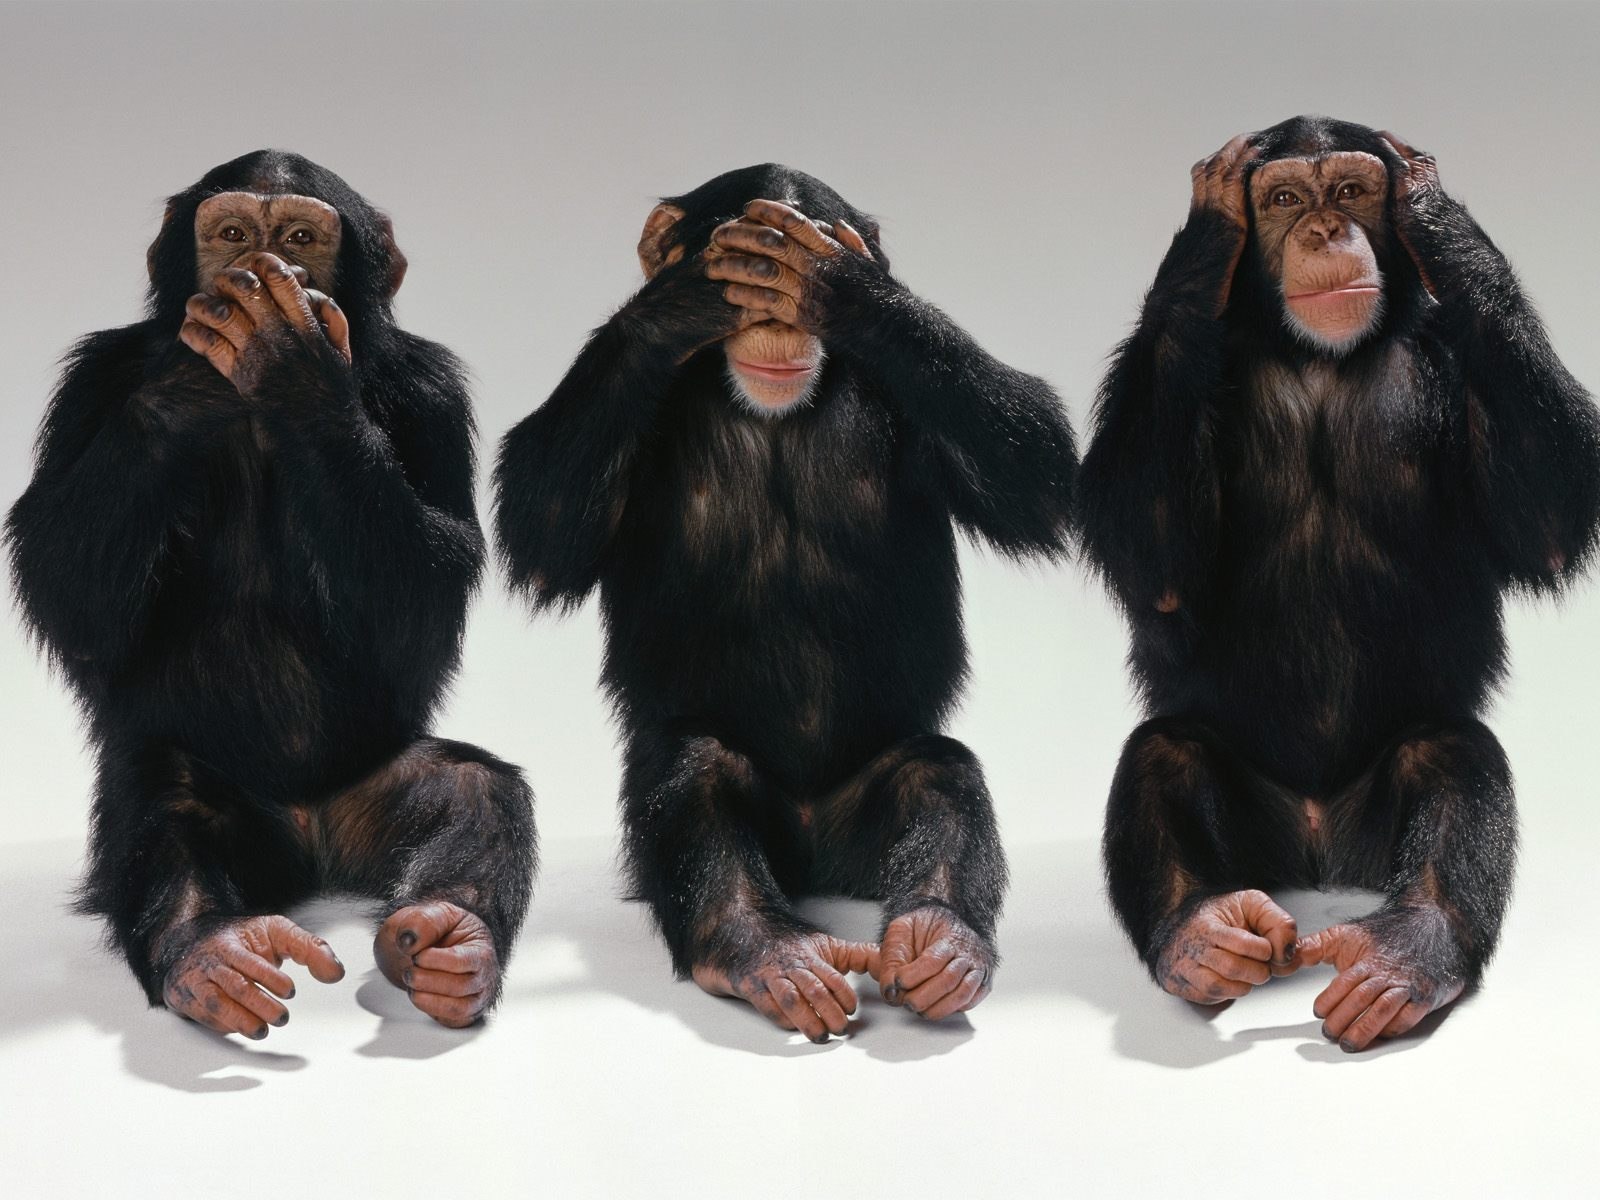 See no evil, hear no evil, speak no evil - monkeys photo